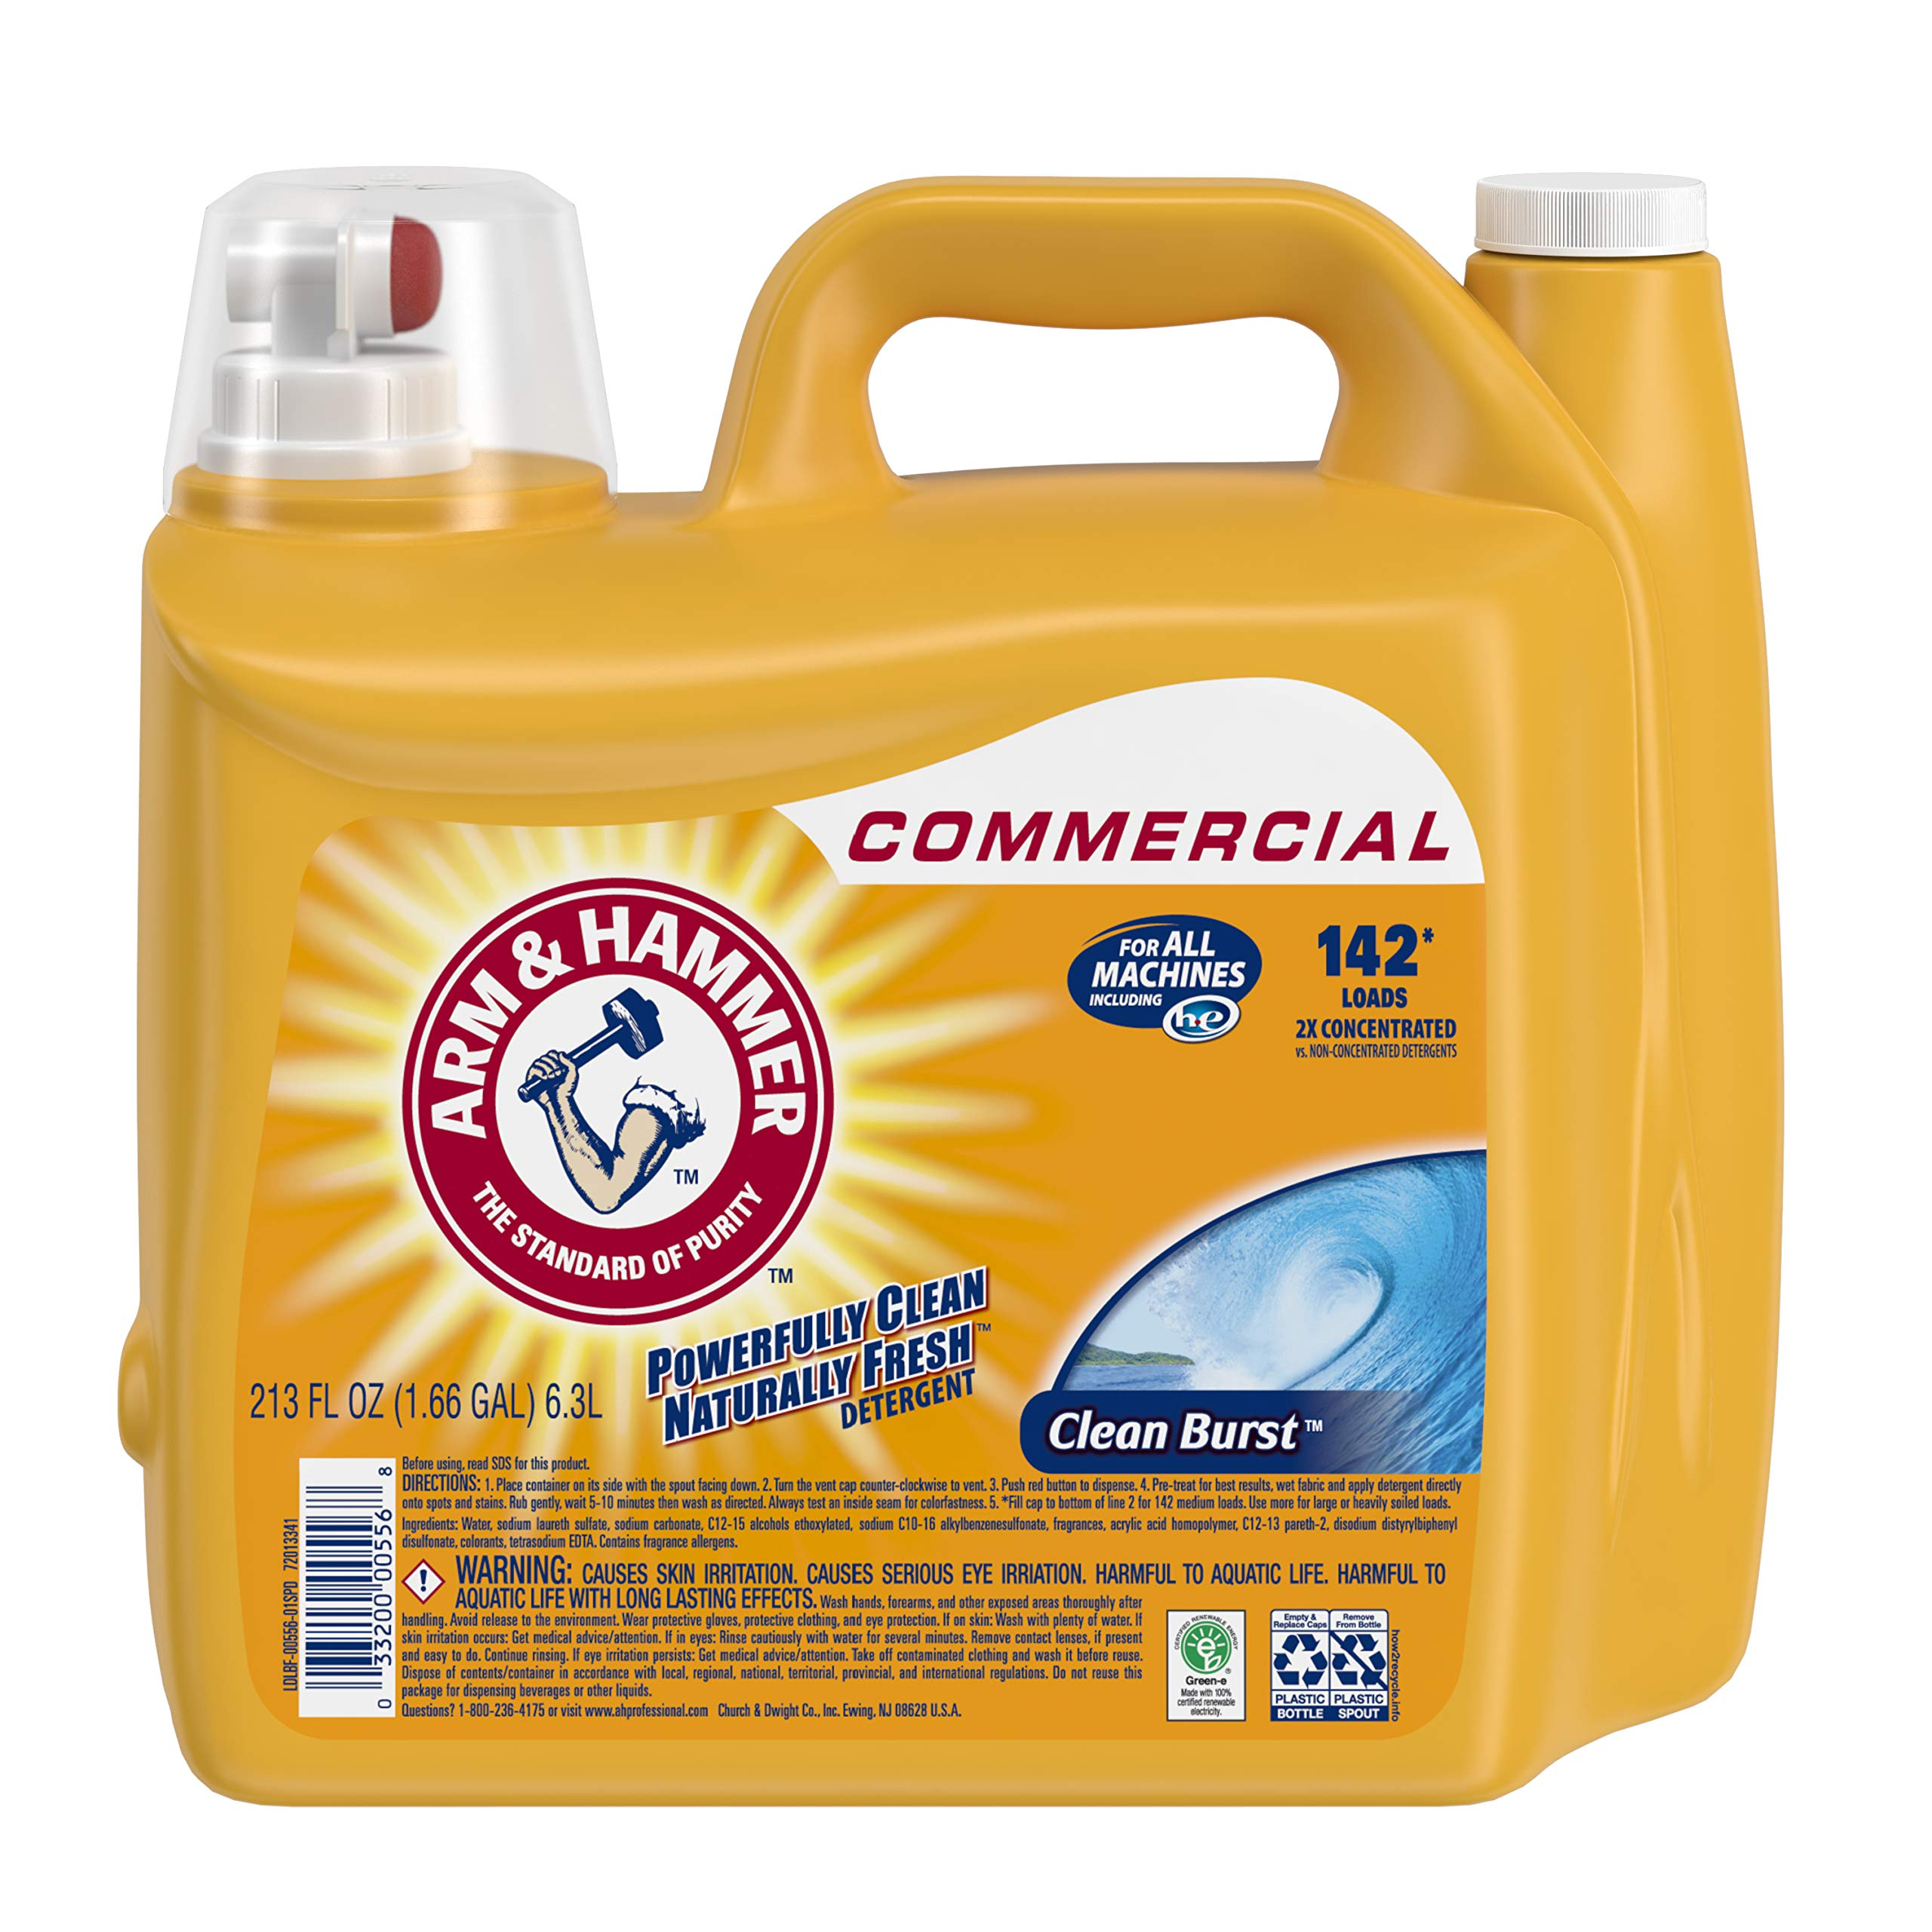 Arm & Hammer 33200-00556 Liquid Laundry Detergent, Clean Burst, 213 oz. 142 Loads (Pack of 2) by Arm & Hammer